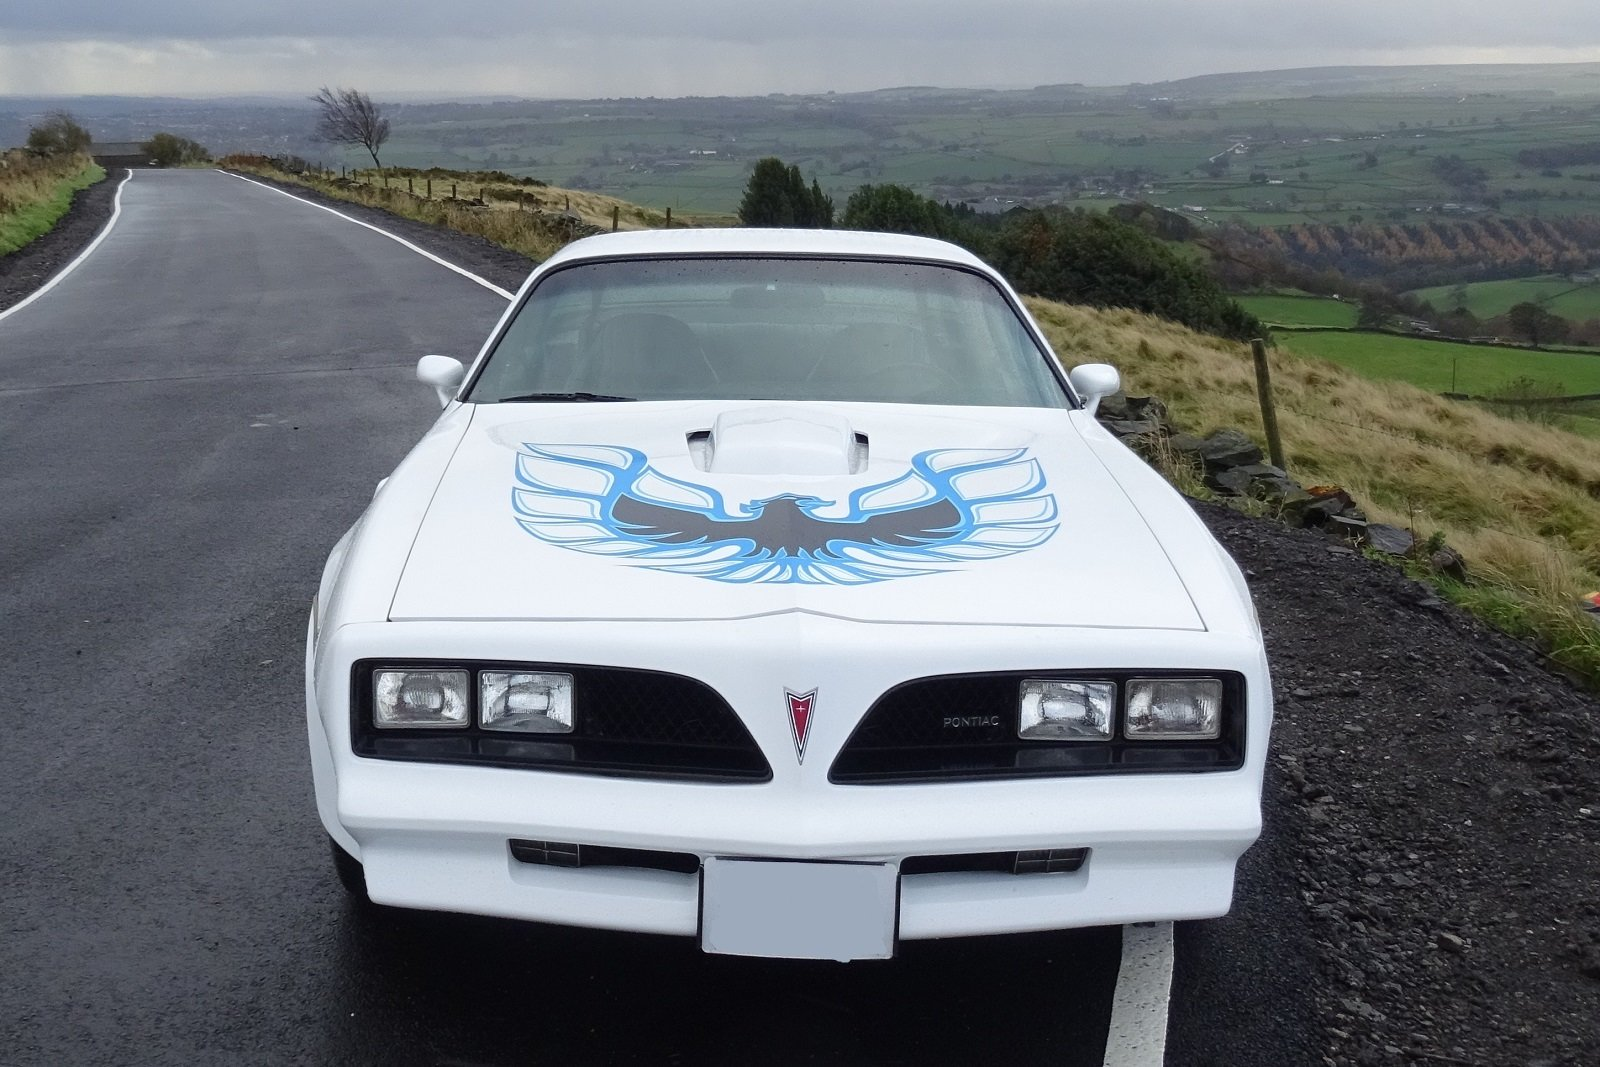 1978 STUNNING FIREBIRD TRANS AM 6.6 V8 POWERFUL ENGINE MUSCLE CAR For Sale (picture 2 of 6)